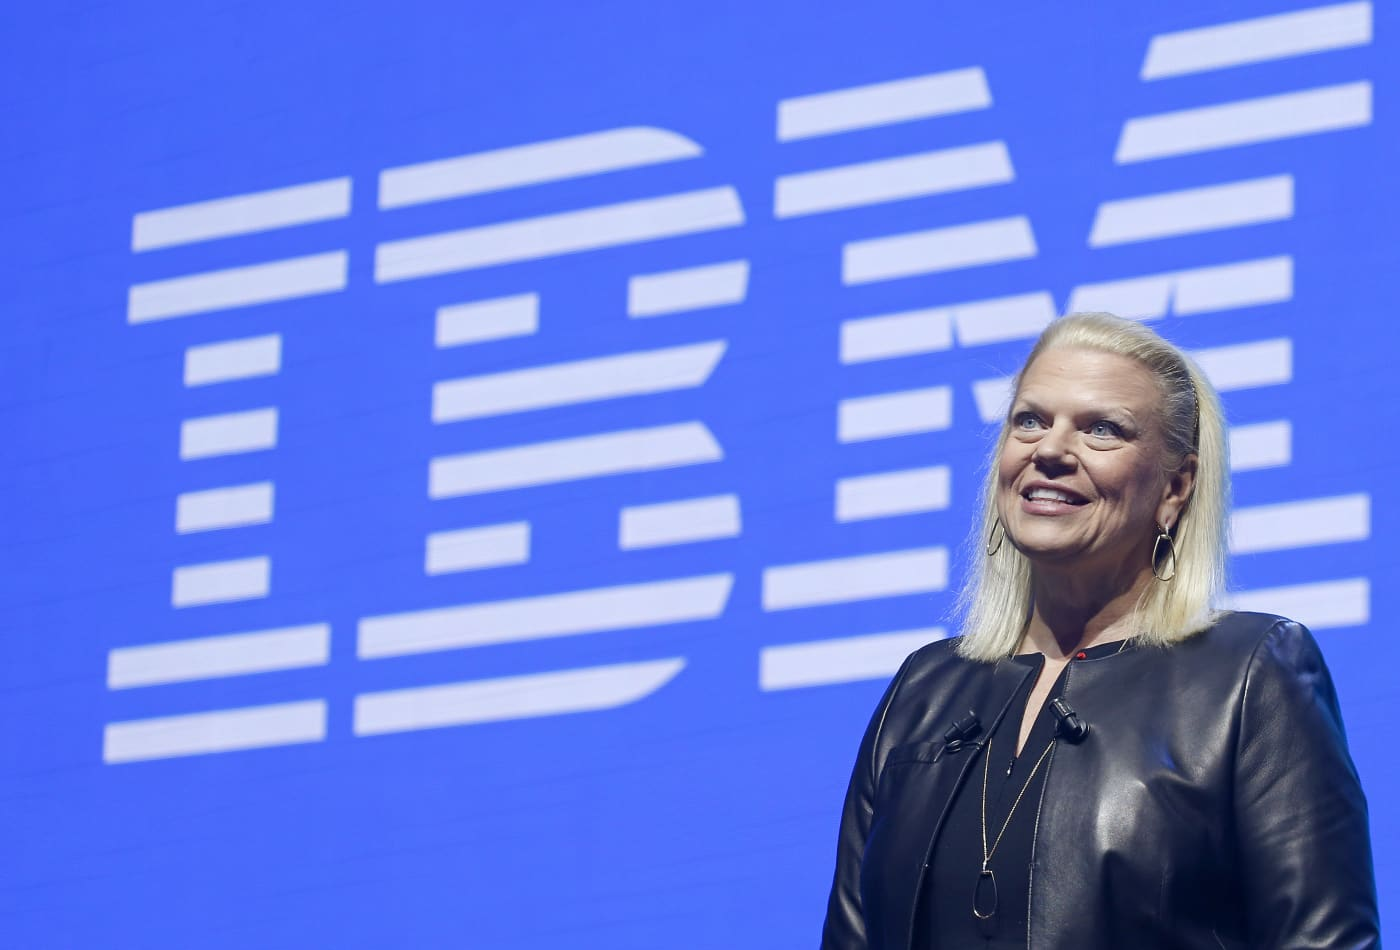 IBM rises as much as 5% on strong earnings report